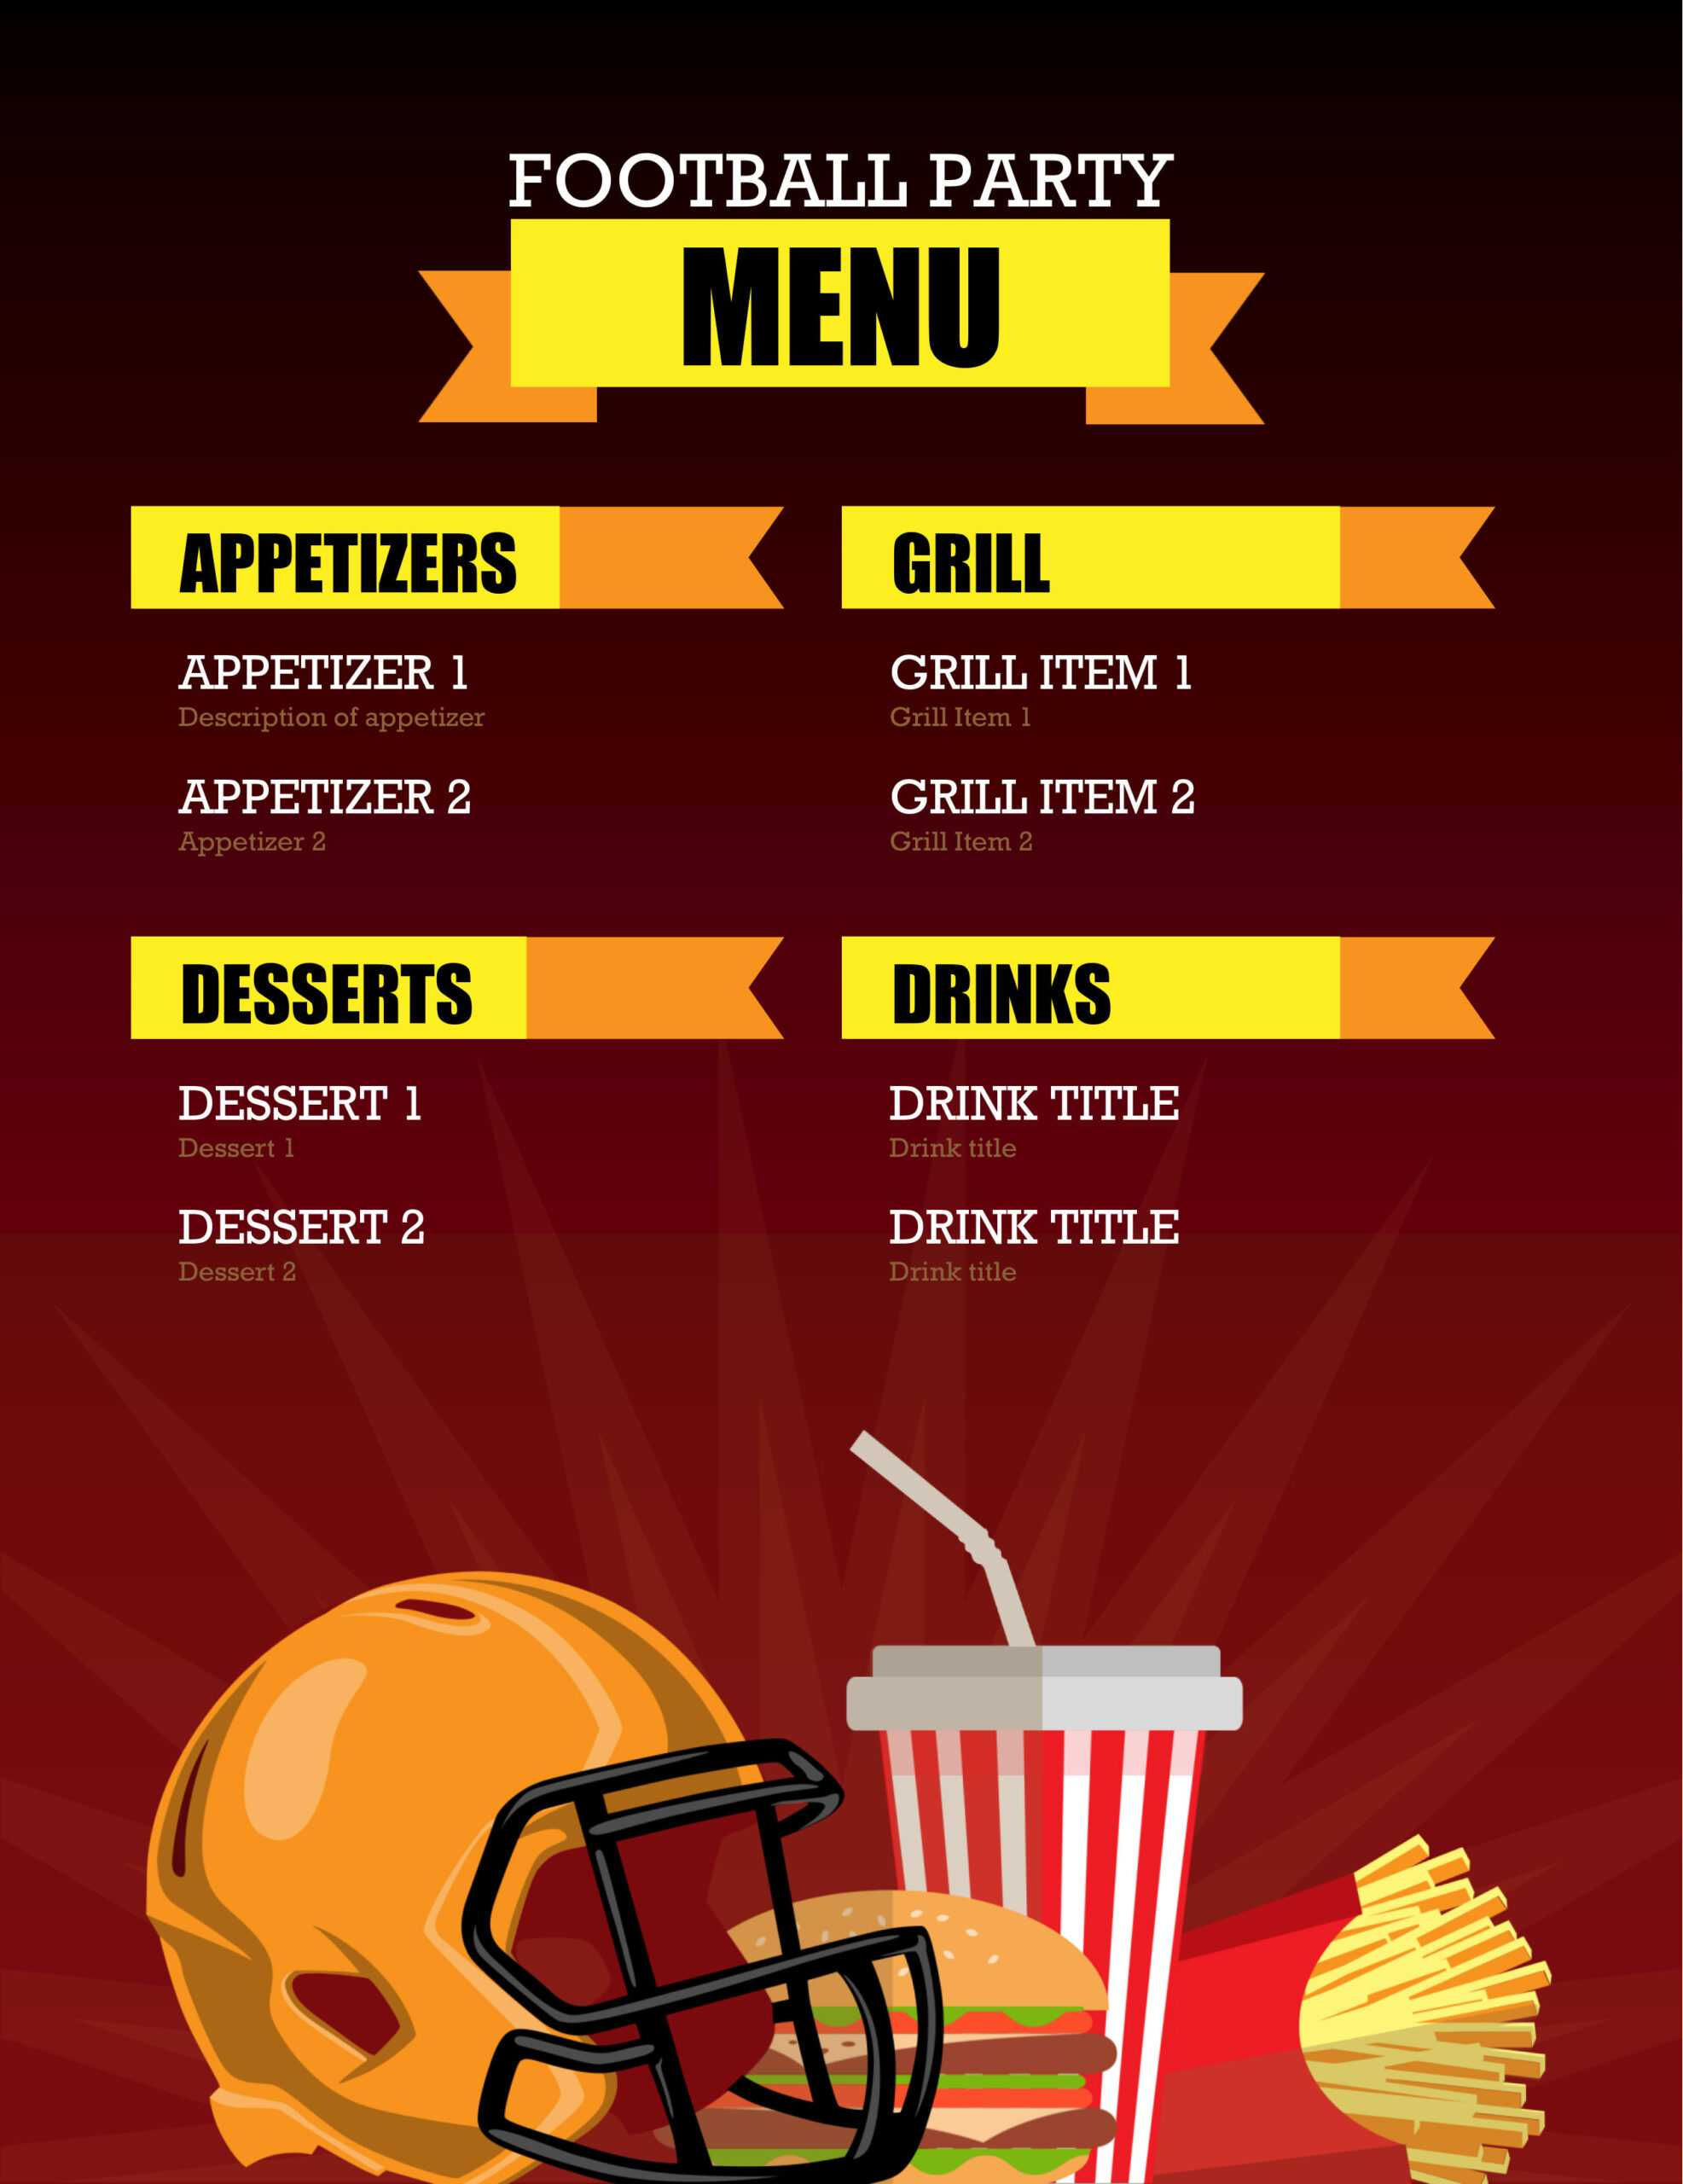 32 Free Simple Menu Templates For Restaurants, Cafes, And Within Football Menu Templates